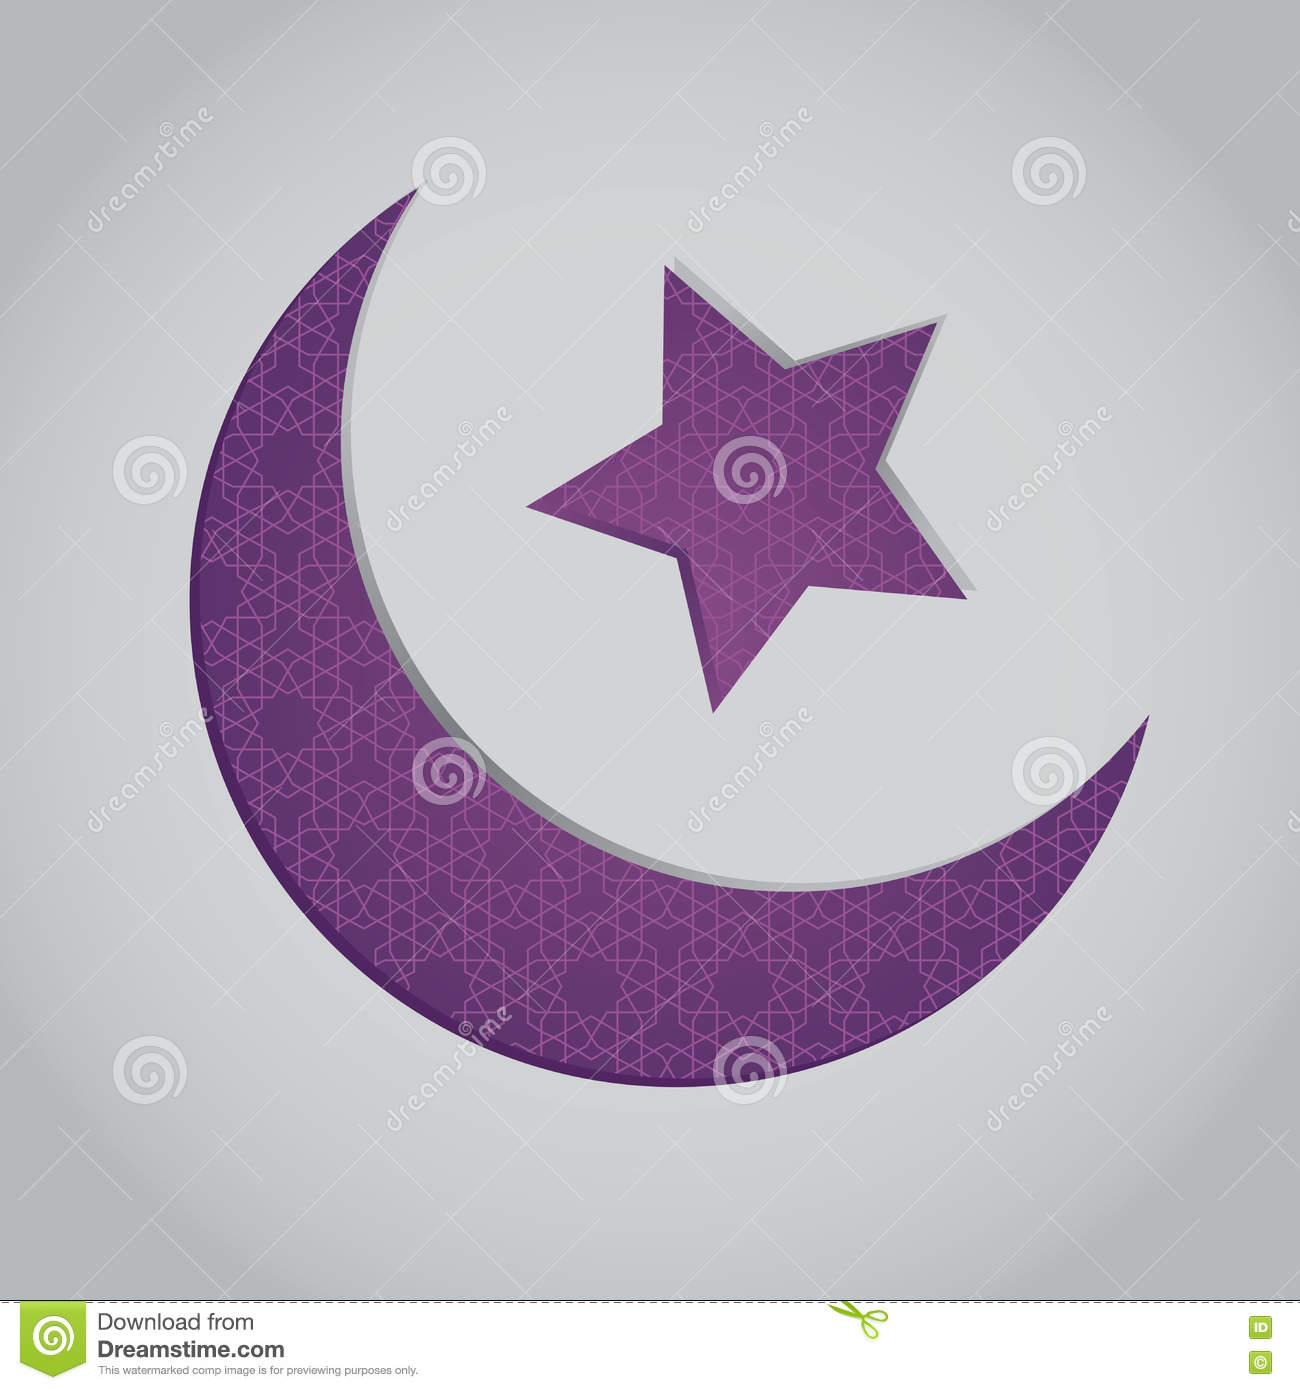 islamic crescent moon and star with arabic pattern background